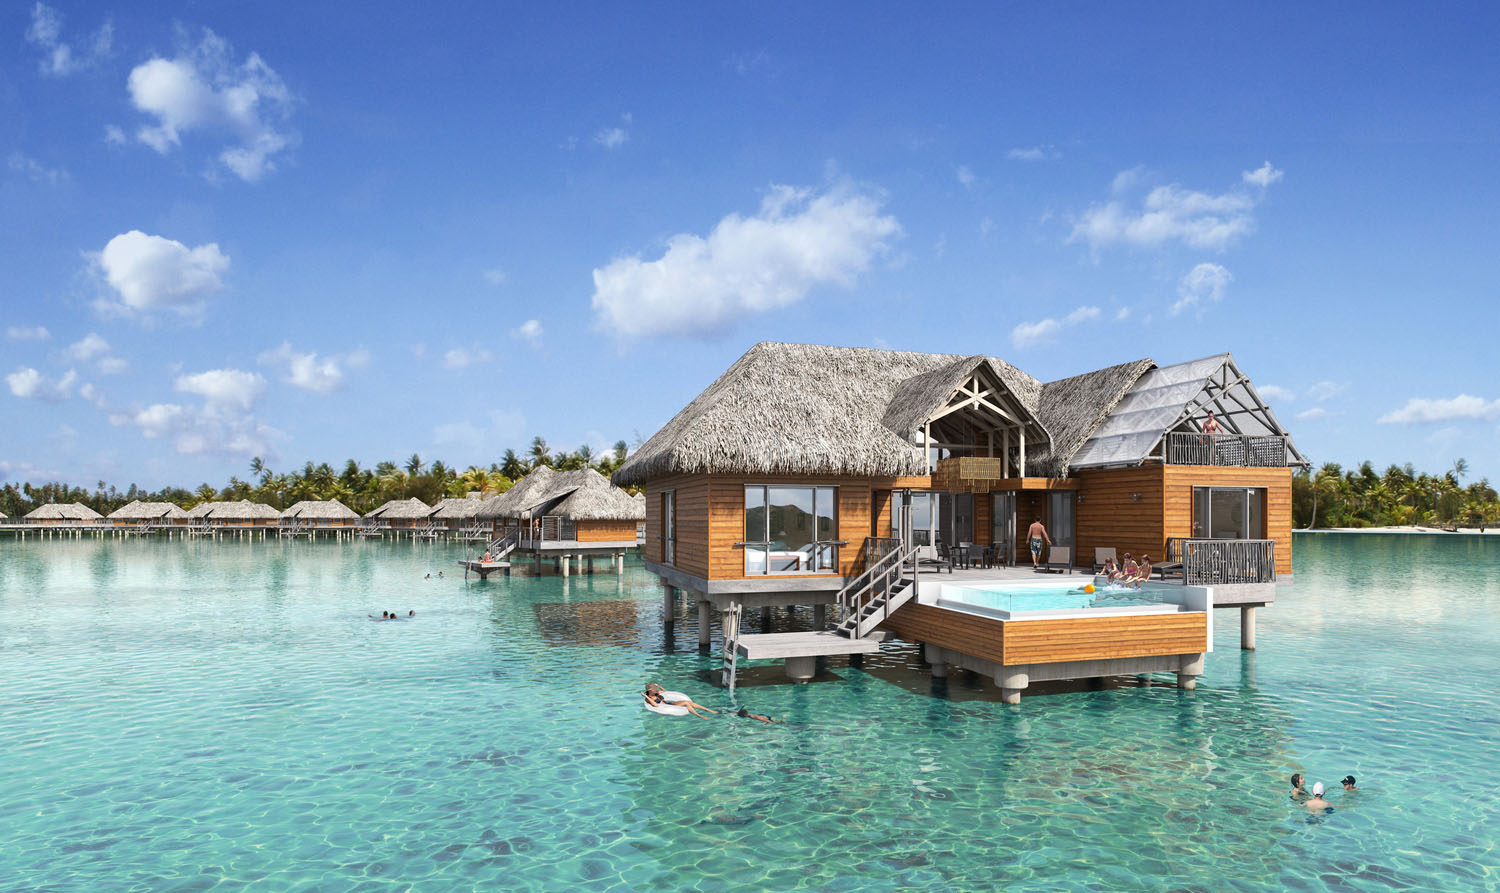 Intercontinental Bora Bora Resort Thalasso Spa Diamond Overwater Bungalow